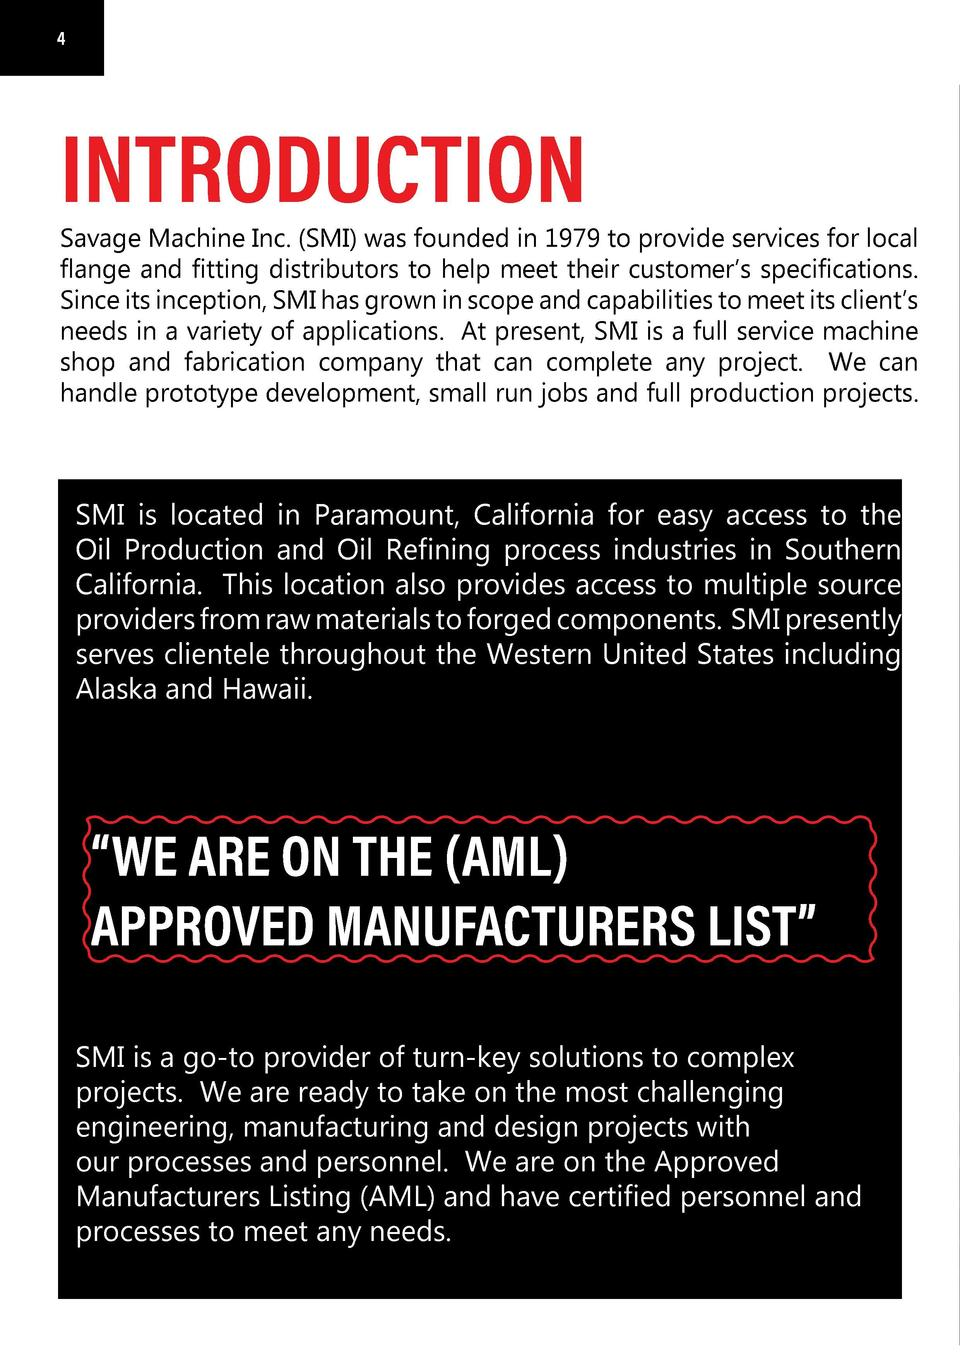 4  4  5  INTRODUCTION  Savage Machine Inc.  SMI  was founded in 1979 to provide services for local flange and fitting dist...